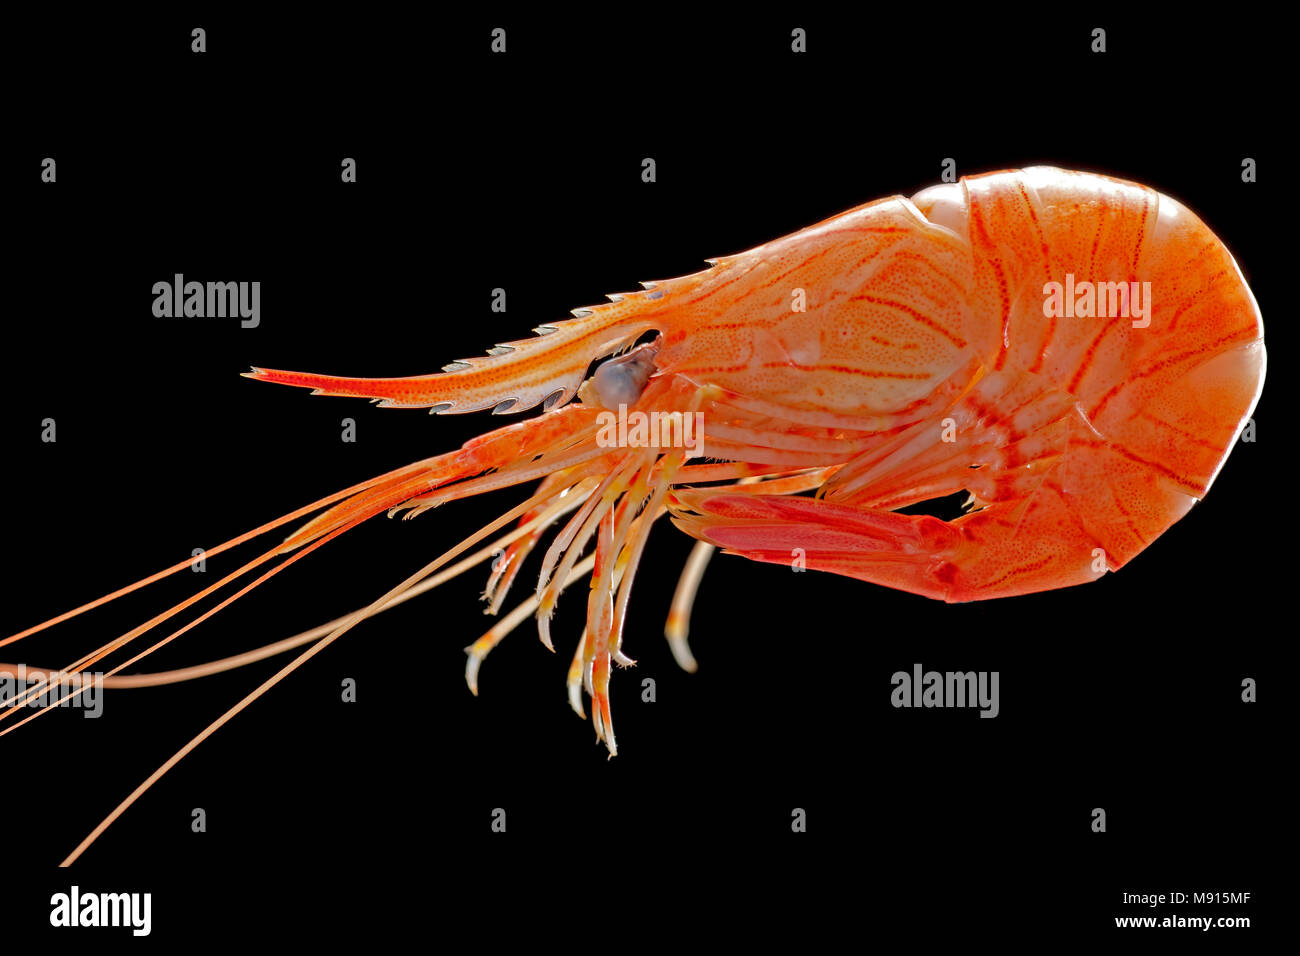 A single boiled common prawn, Palaemon serratus, caught in a prawn trap lowered of a pier, Weymouth Dorset England UK GB. Black background - Stock Image